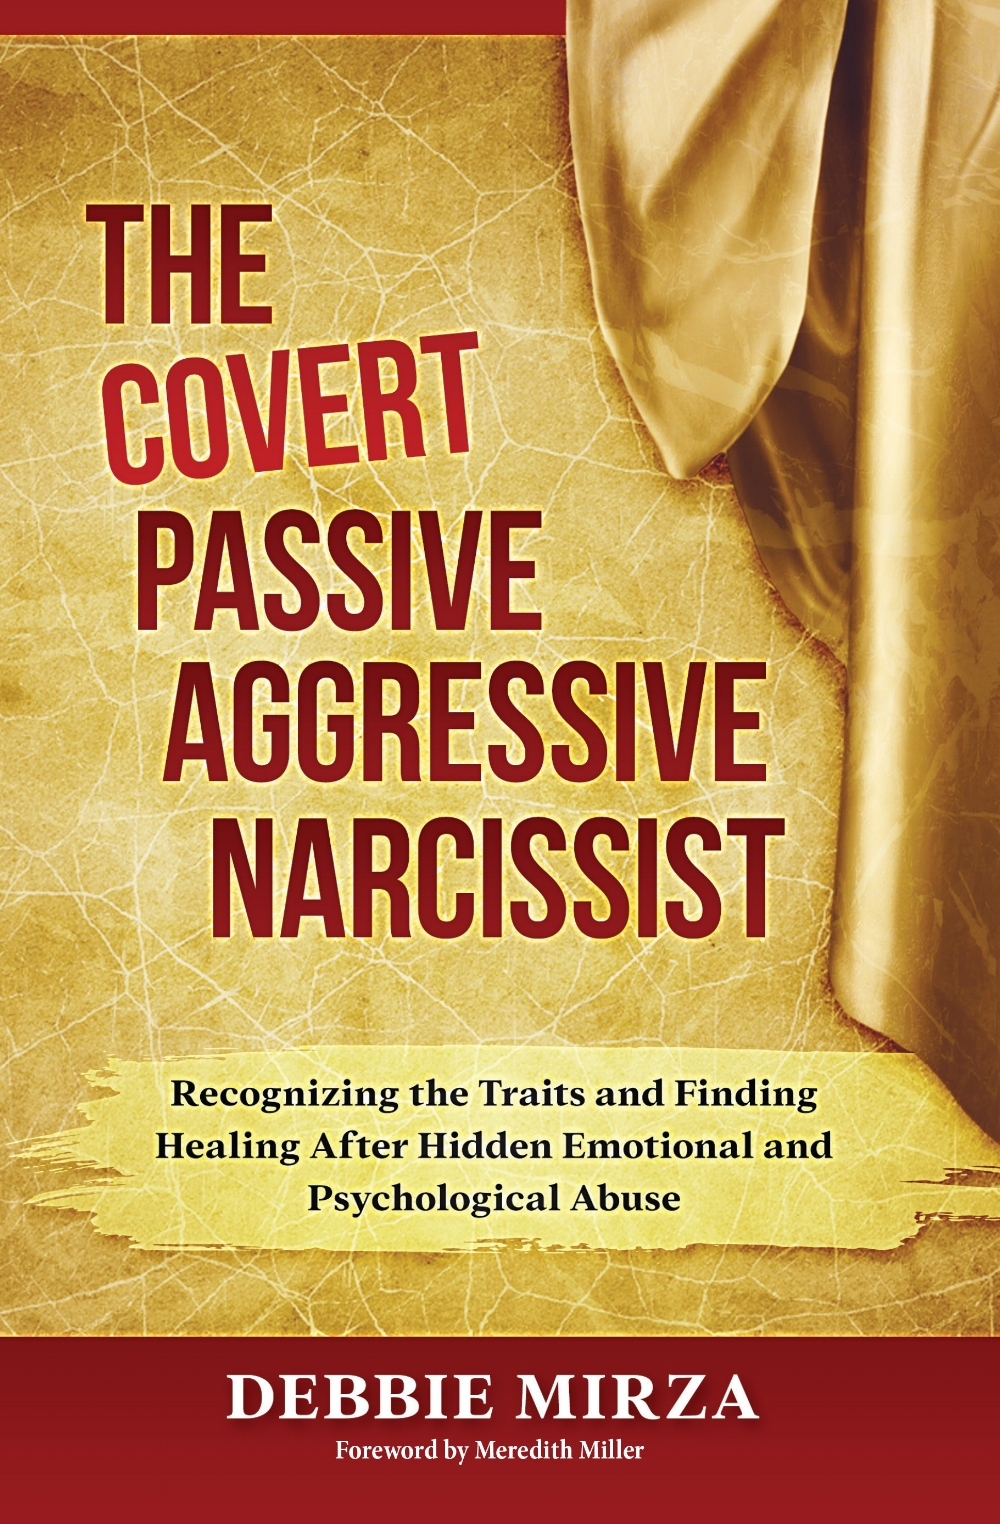 The Covert Passive Agressive Narcissist_cover-ebook.jpg